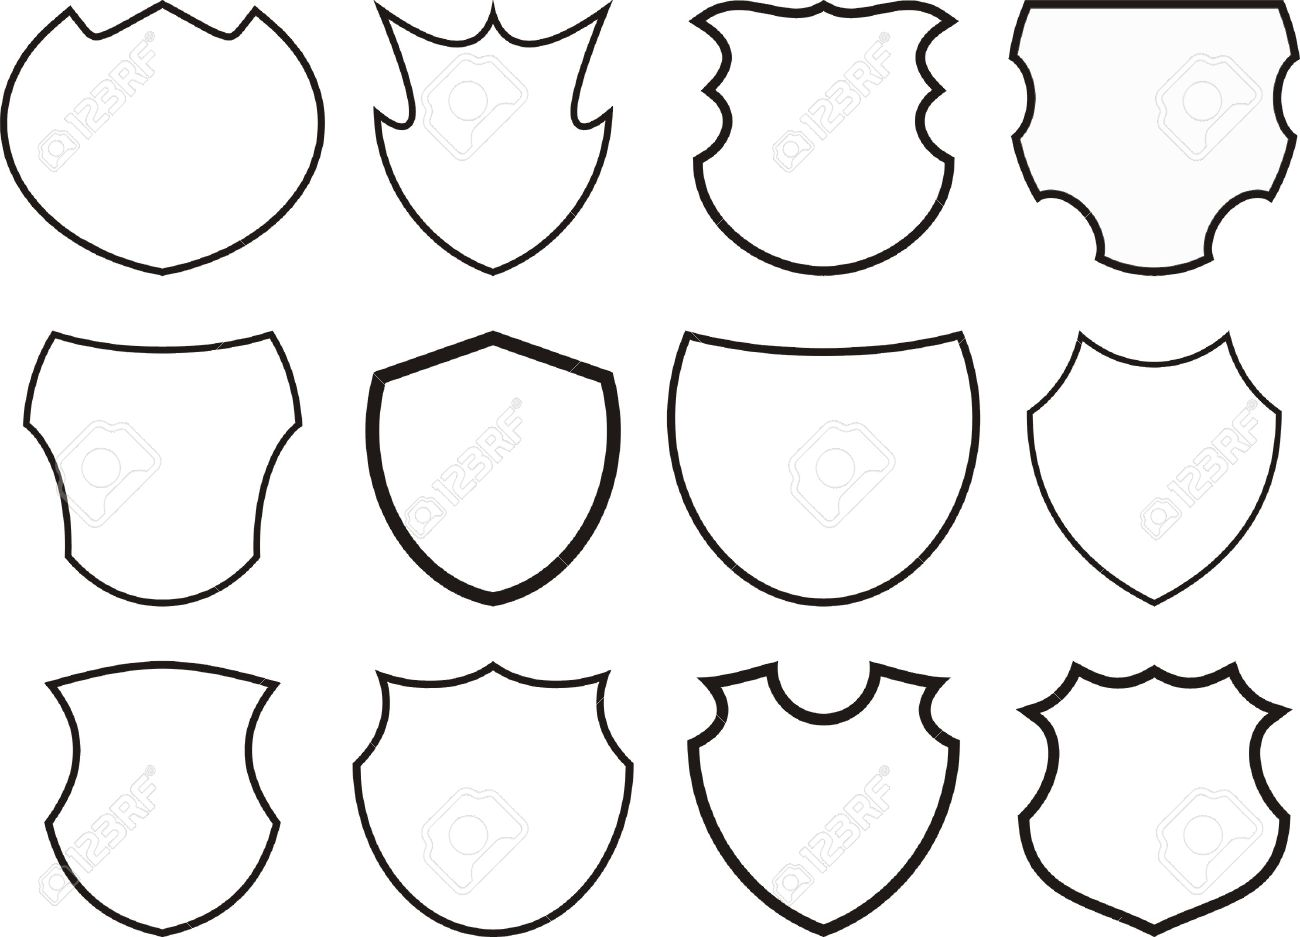 12 shields and crests royalty free cliparts vectors and stock rh 123rf com crest vector art crest vector png